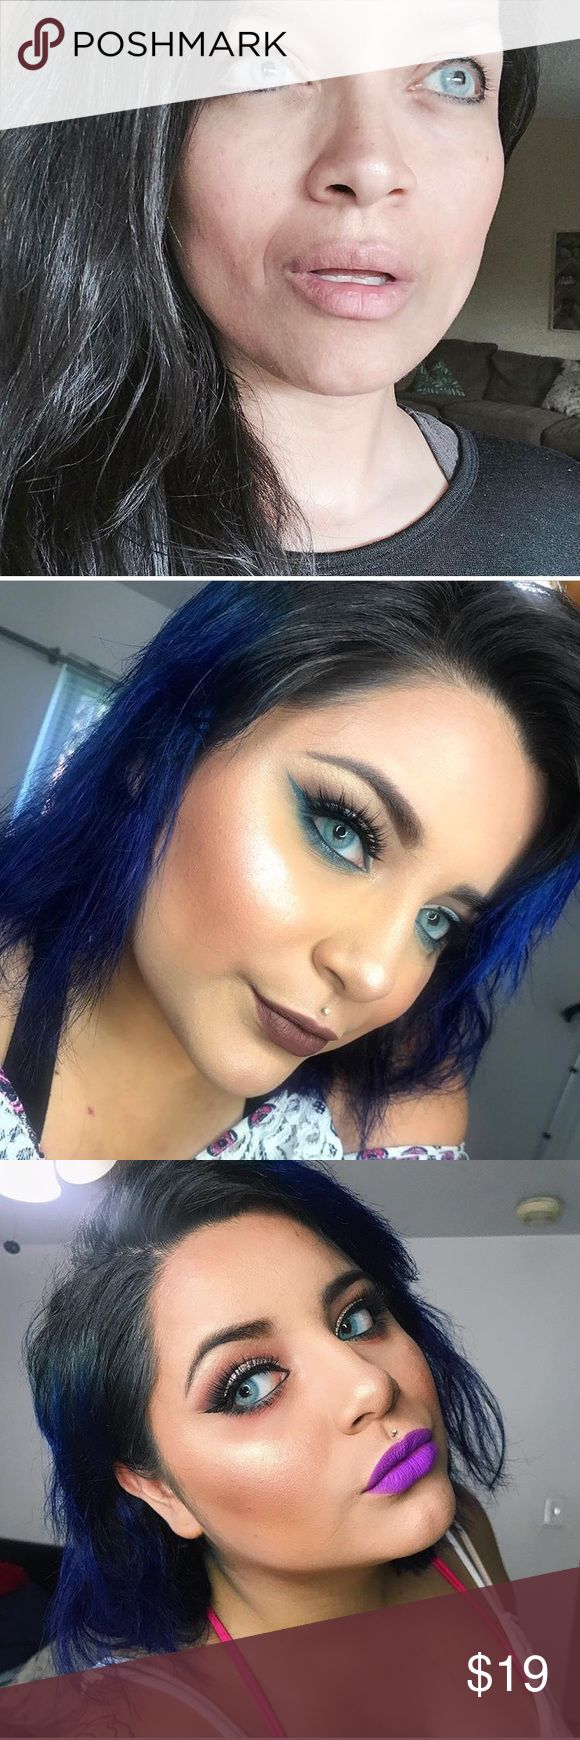 😍 GORGEOUS EYE COLOR AQUA BLUE CONTACTS WITH CASE 2 Lenses Case Included FreshTone Brand Monthly Lenses We ship daily Other